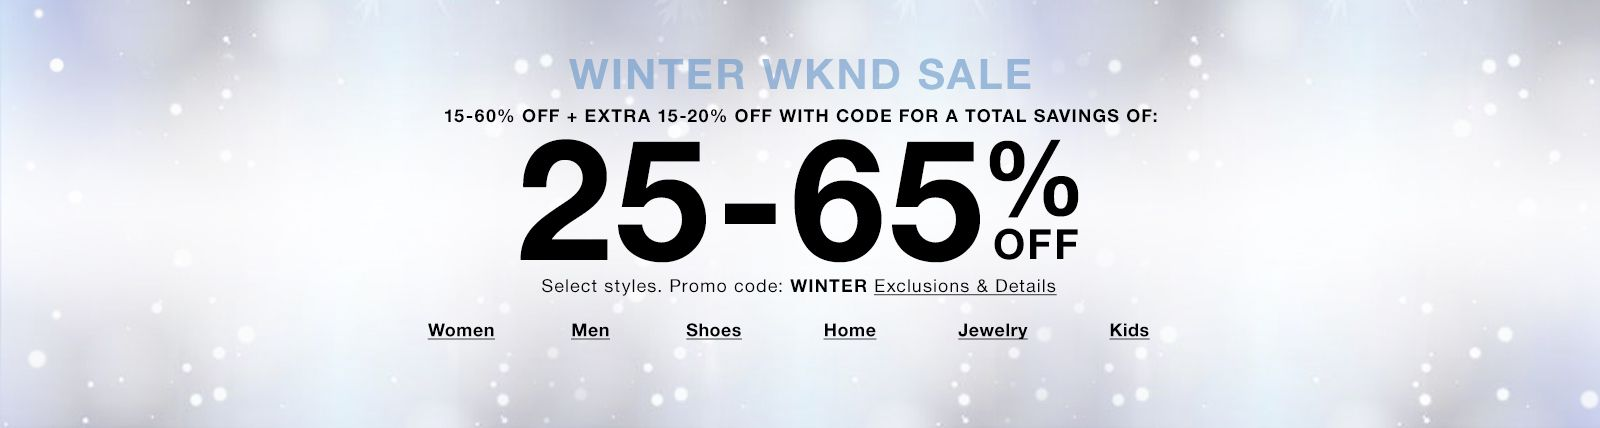 Winter Wknd Sale, 15-60% Off + Extra 15-20% Off With Code for a Total Savings of, 25-65% Off, Promo code: WINTER Exclusions and Details, Women, Men, Shoes, Home, Jewelry, Kids